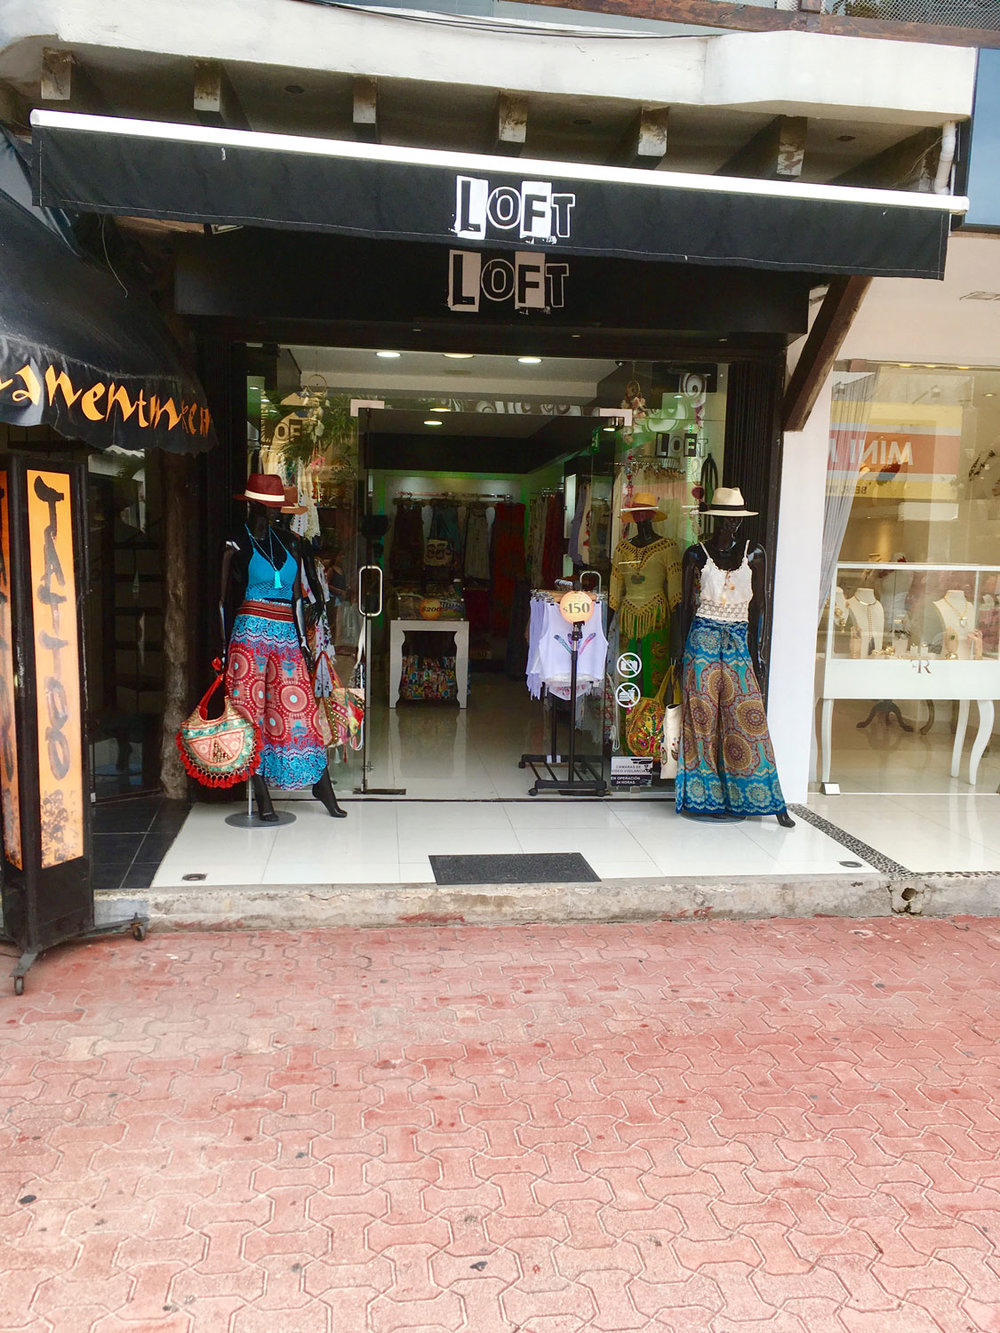 Fashion boutique shop on Fifth Avenue. Right: Catrinas outside the shop welcome the shoppers.